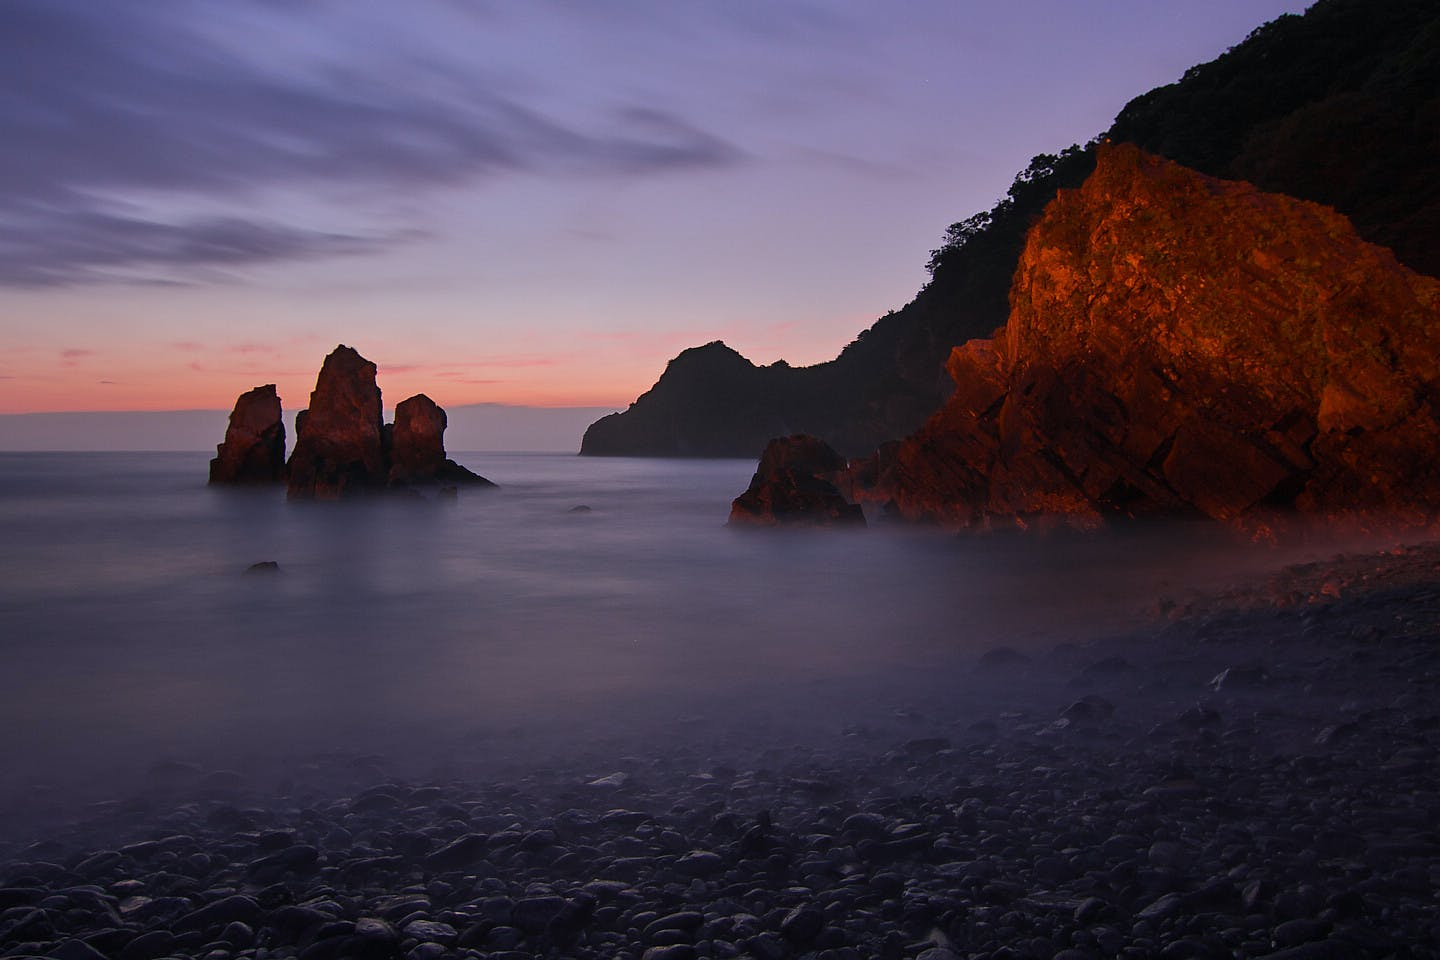 Tall Rock Formation Submerged in Water Near the Shore during Golden Hour